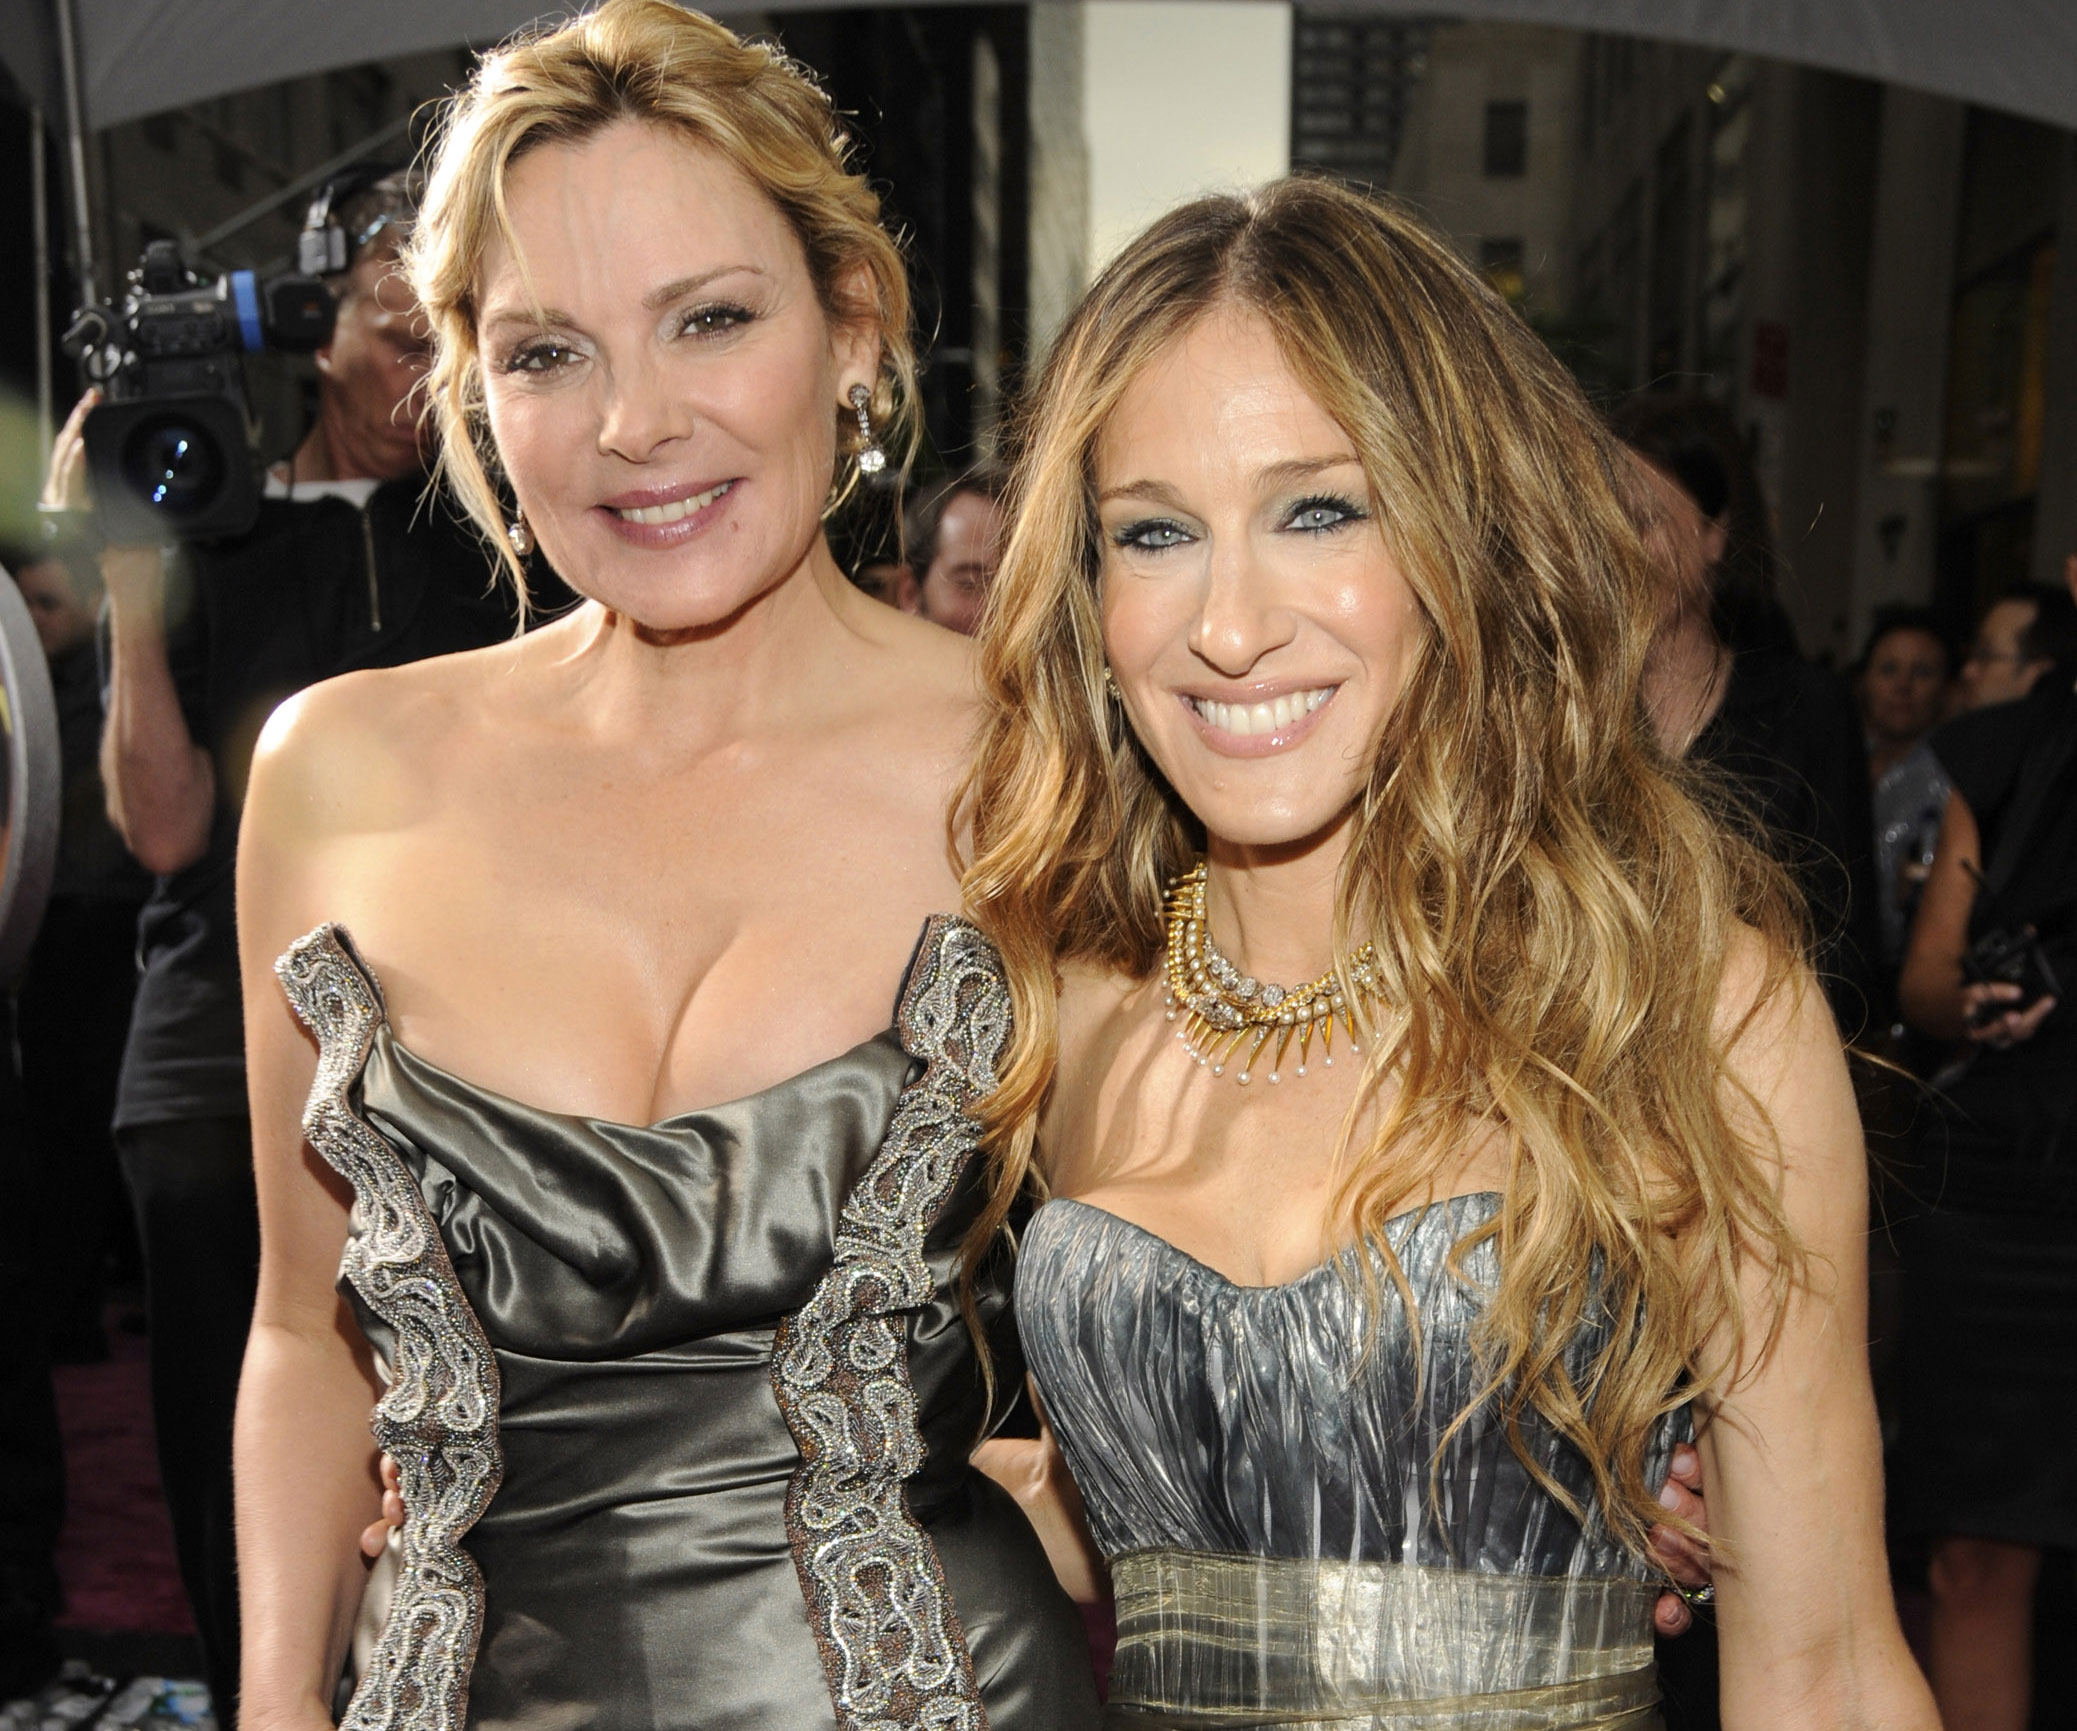 Sarah Jessica Parker breaks silence after savaging by Kim Cattrall